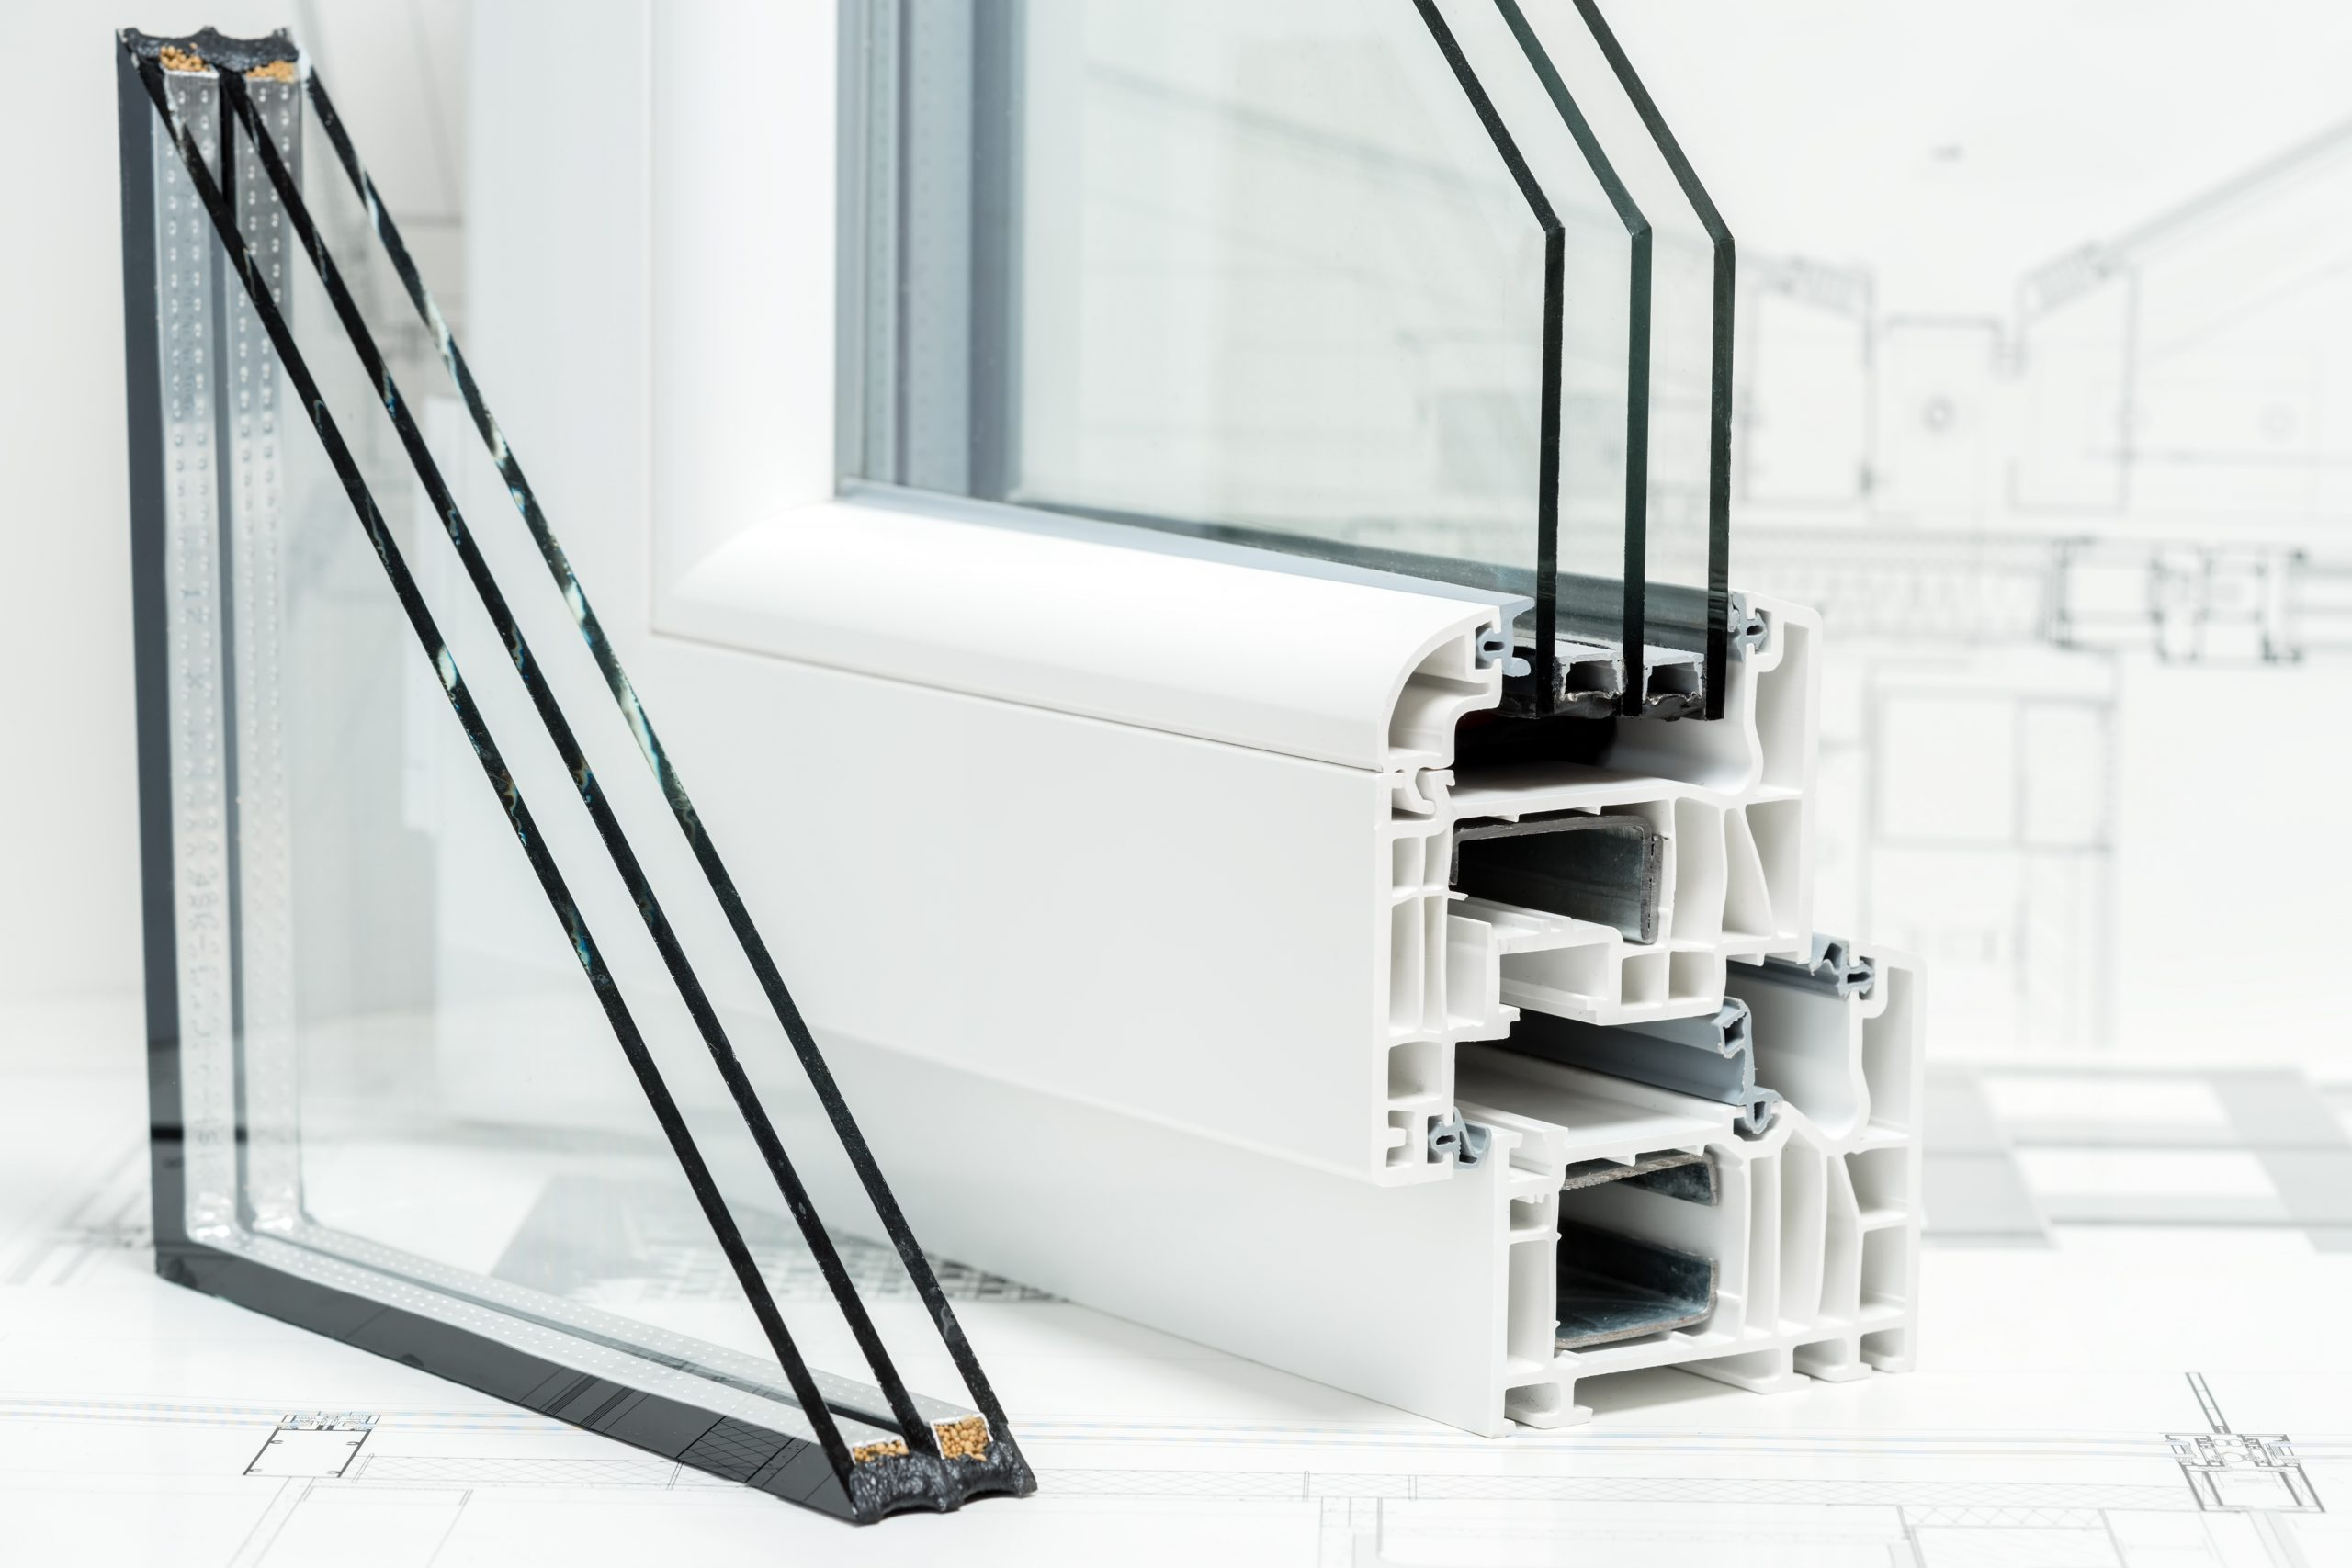 A,Cross,Section,Of,Window,Design,Of,Pvc,Profiles,For